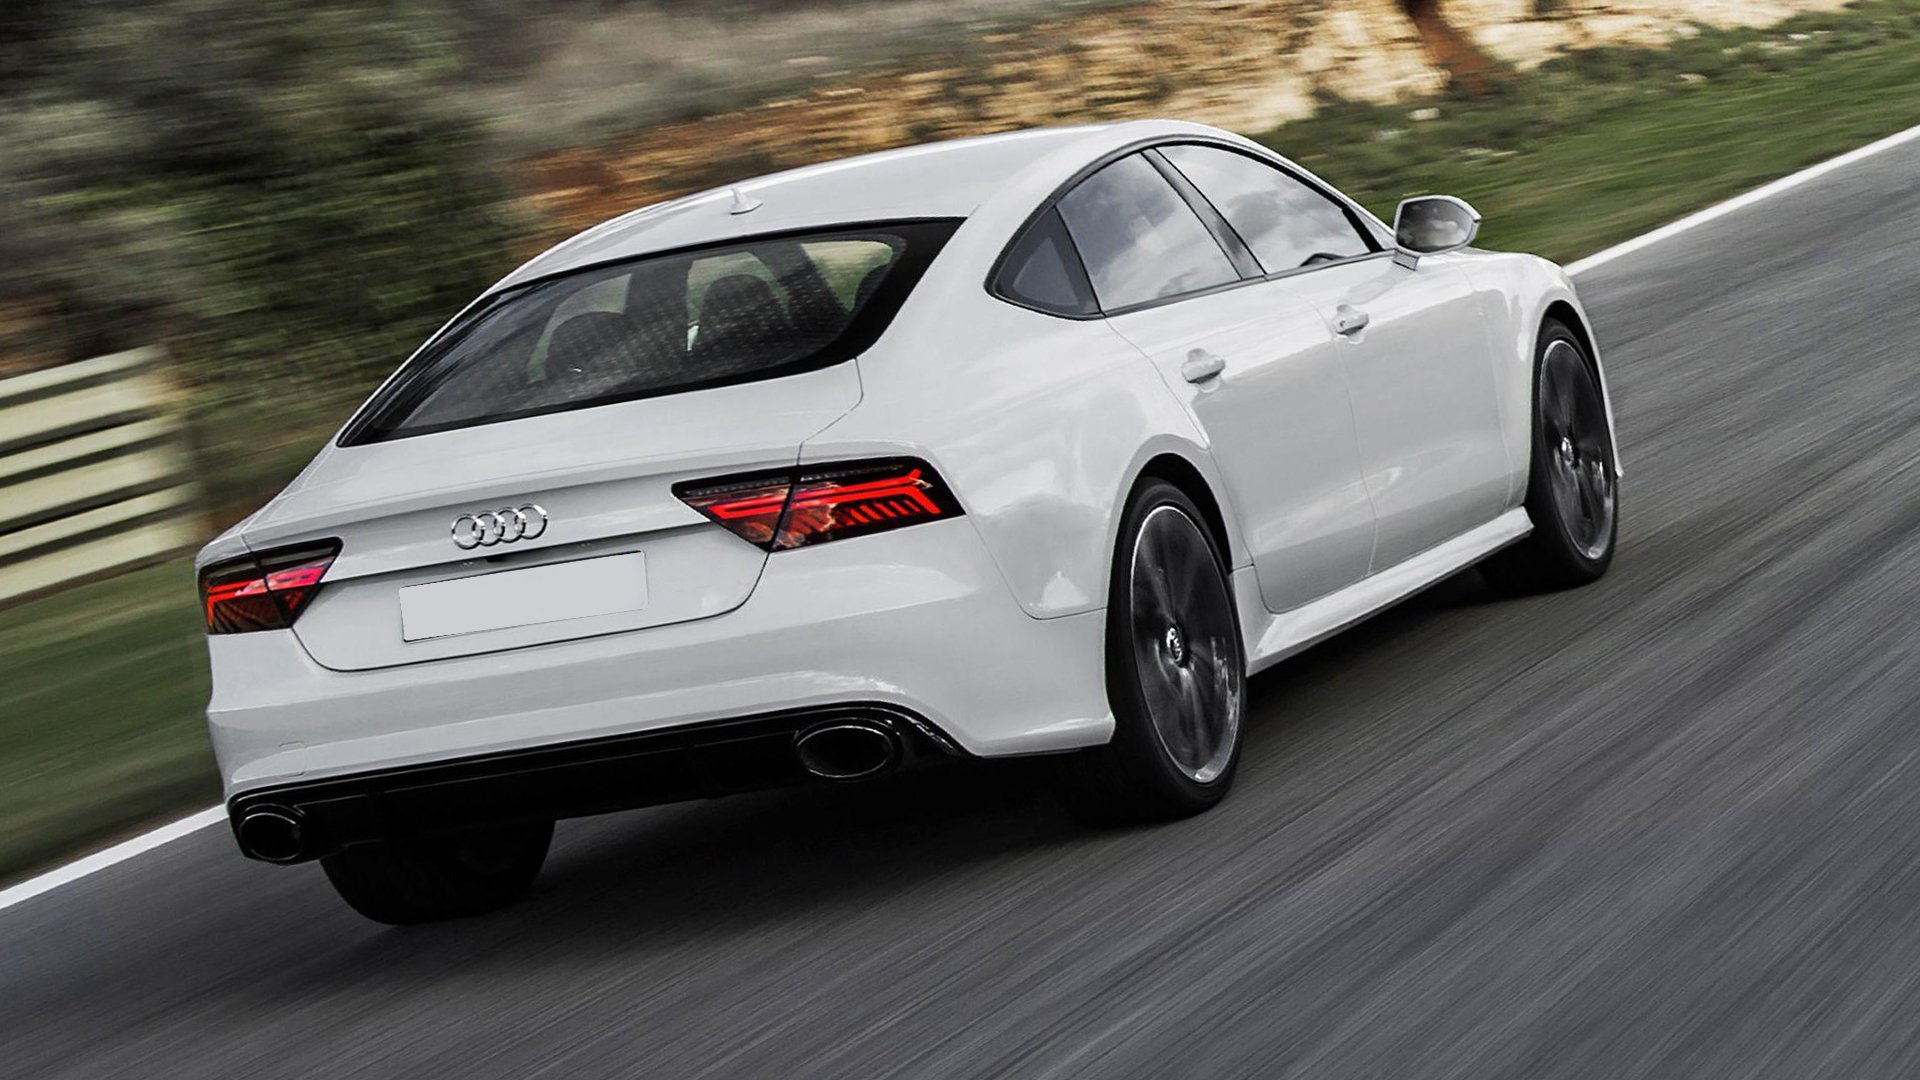 New Review 2019 Audi RS 7 Sportback Test Drive On Road